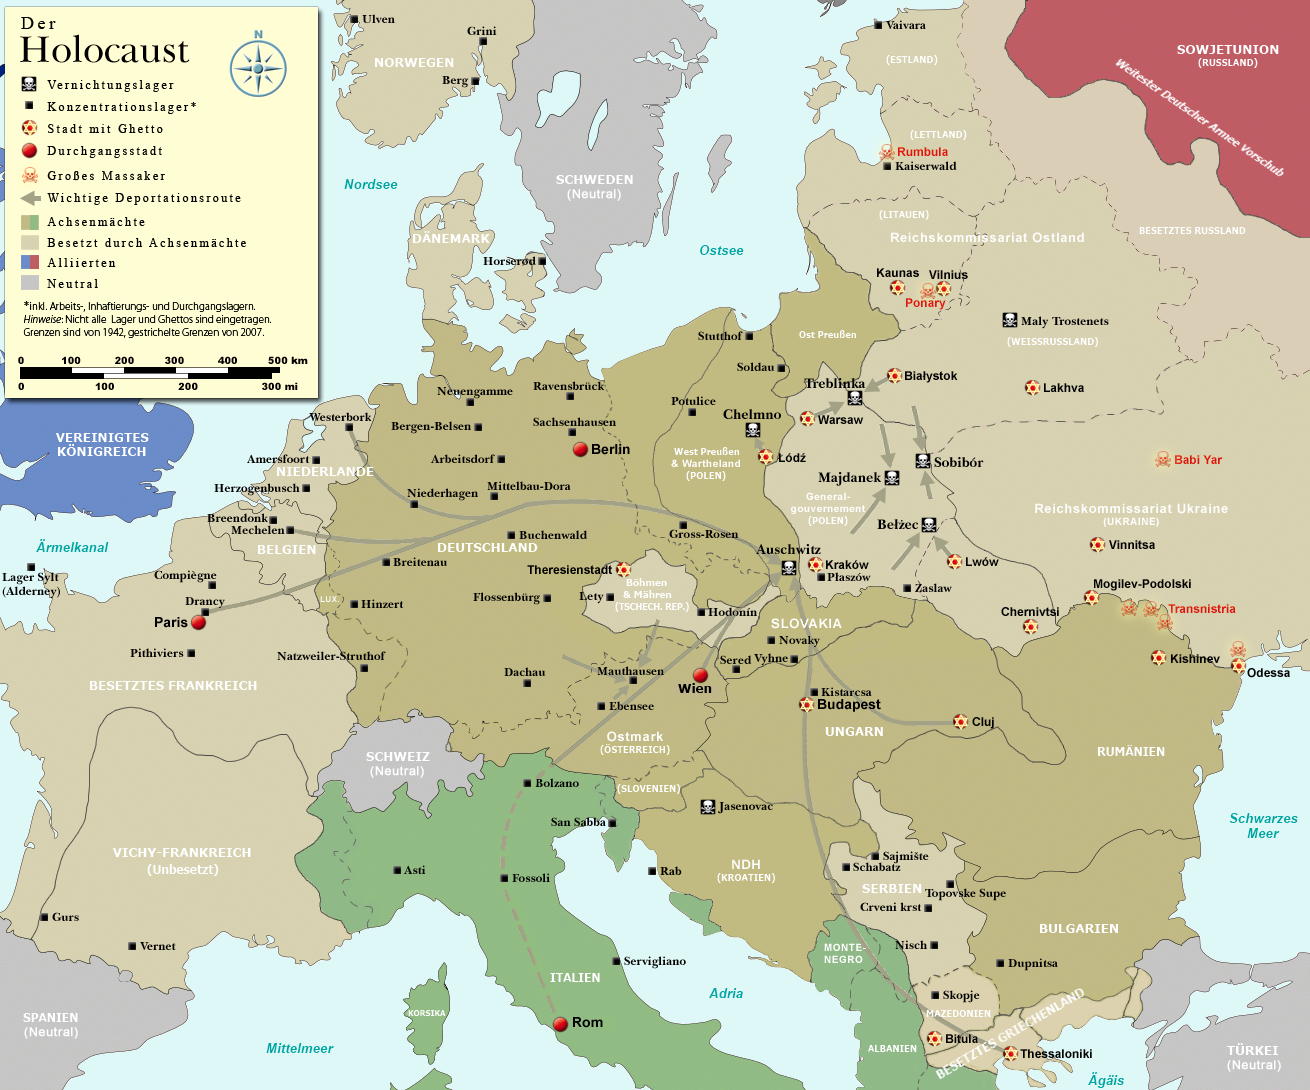 A Map depicting Nazi concentration camps.